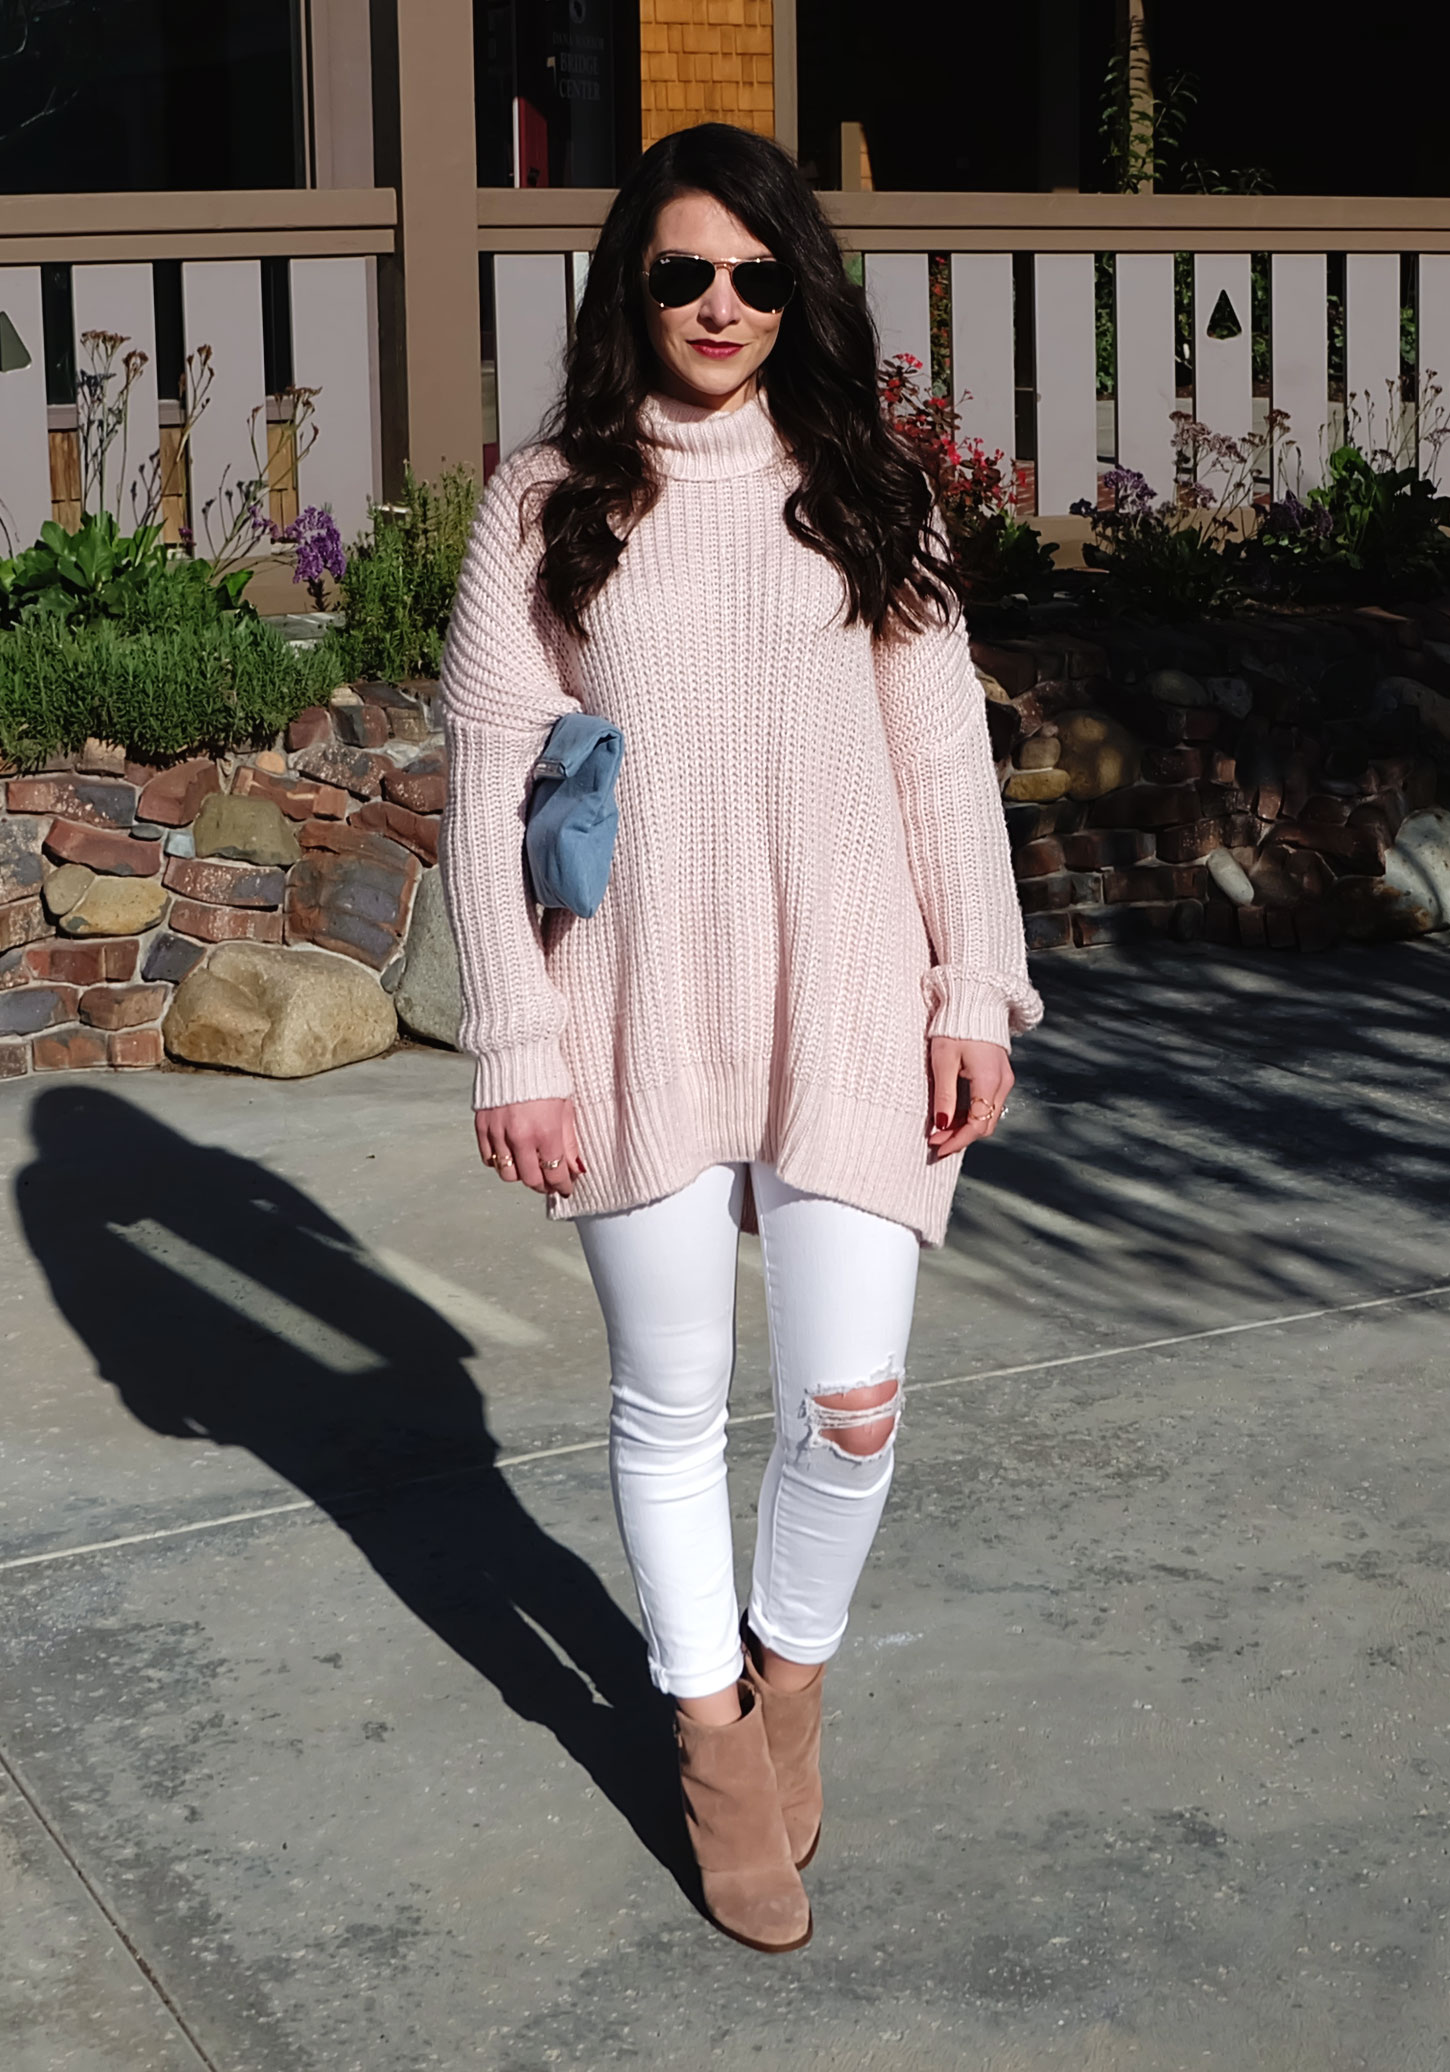 Winter Outfit, Leith Oversized Sweater in Rose Quartz, White Distressed Skinny Jeans, Jessica Simpson Cassley Booties, Pastel Outfit, Pantone Colors of The Year 2016